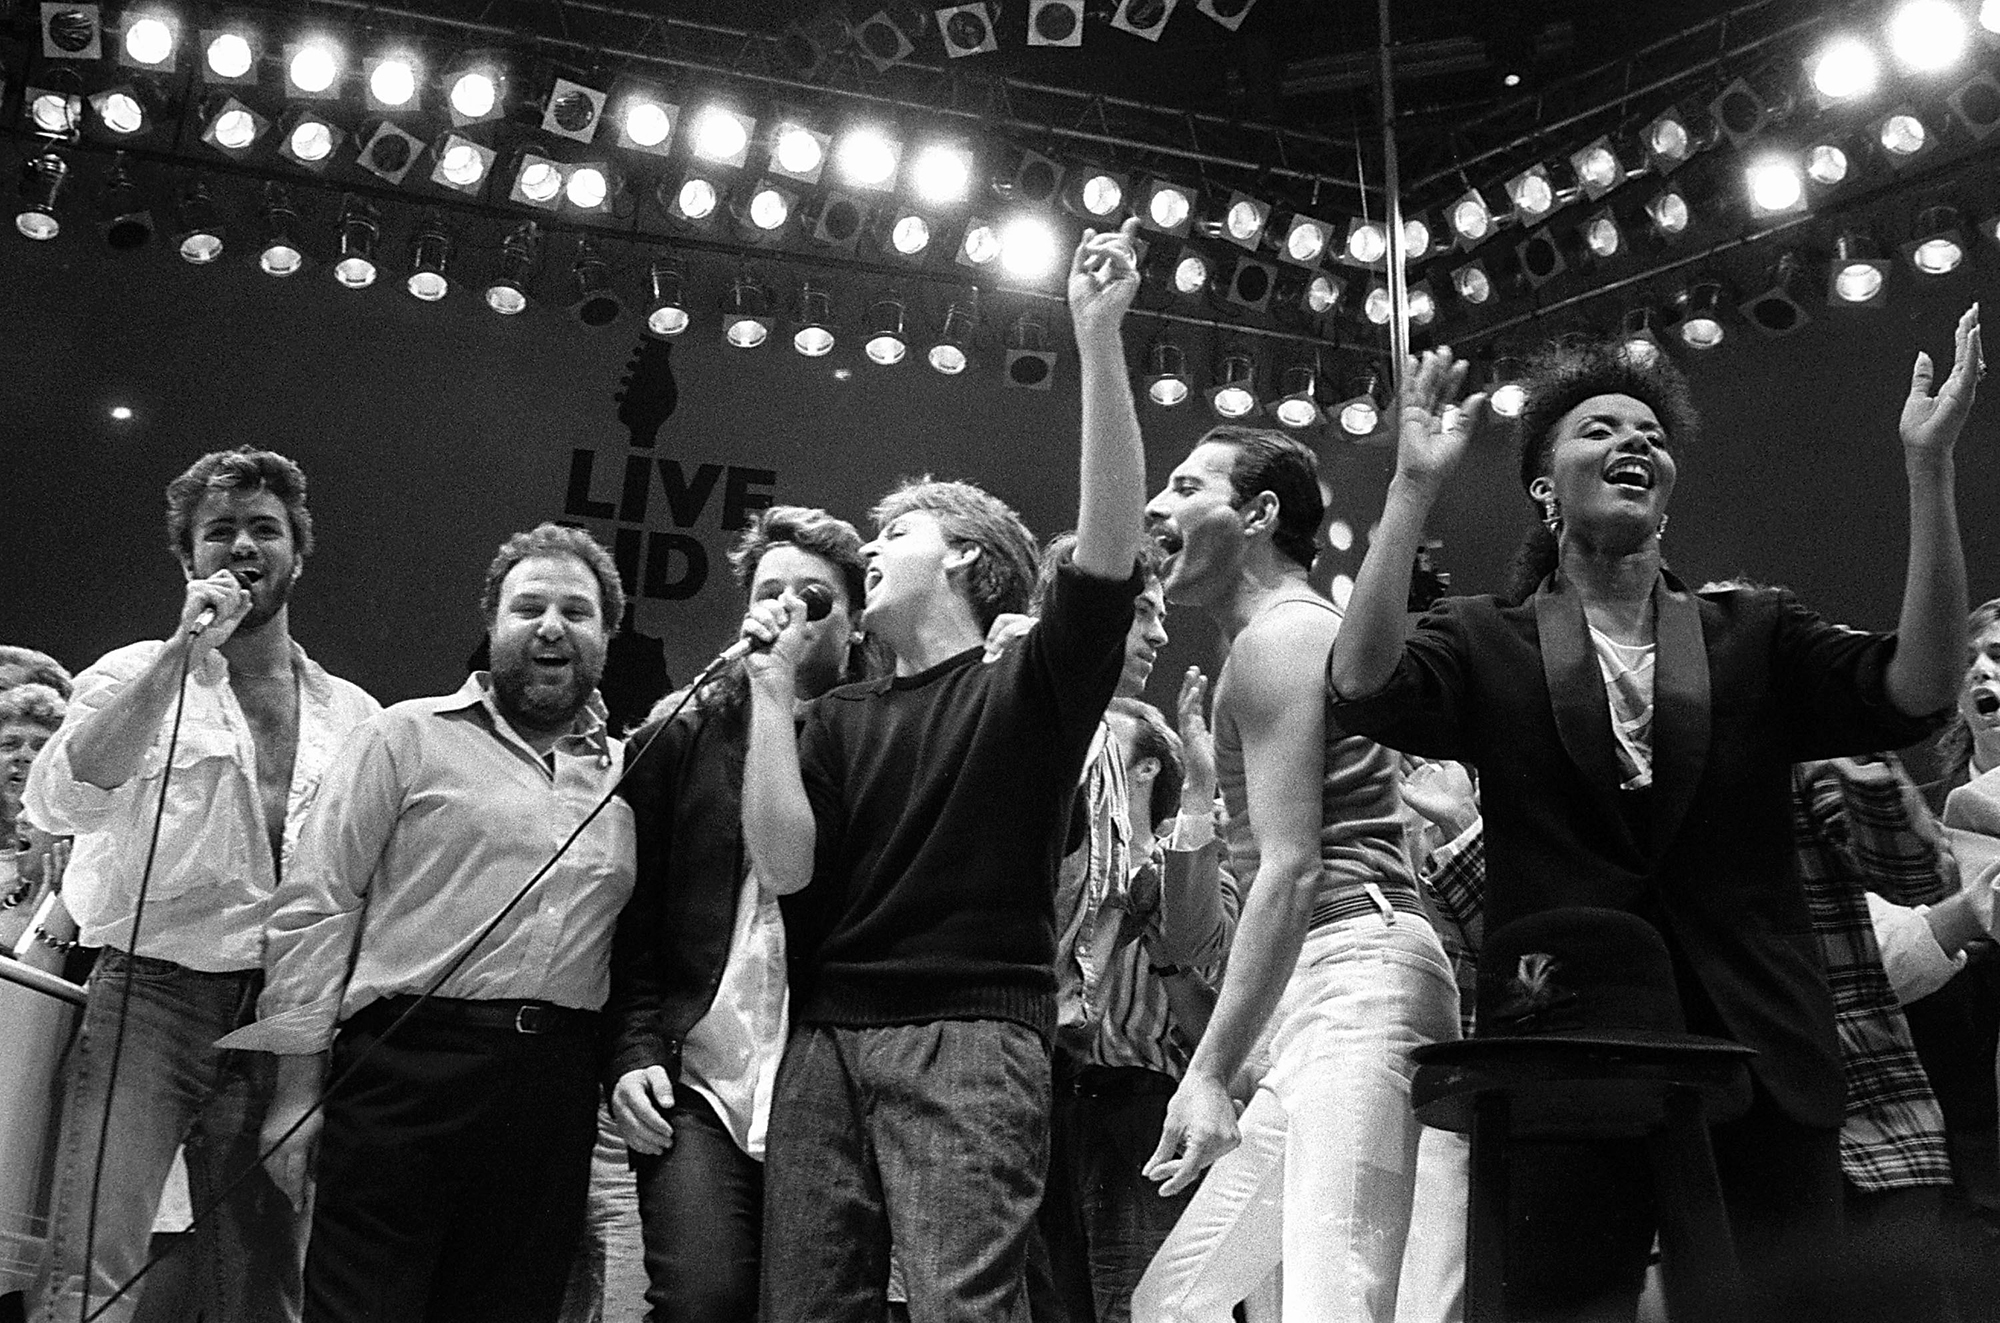 13. juuli 1985, George Michael, Harvey Goldsmith, Bono, Paul McCartney, Bob Geldof ja Freddie Mercury juubeldavad Live Aid kontserdil Londonis. Foto: Joe Schaber / AP Photo / Scanpix